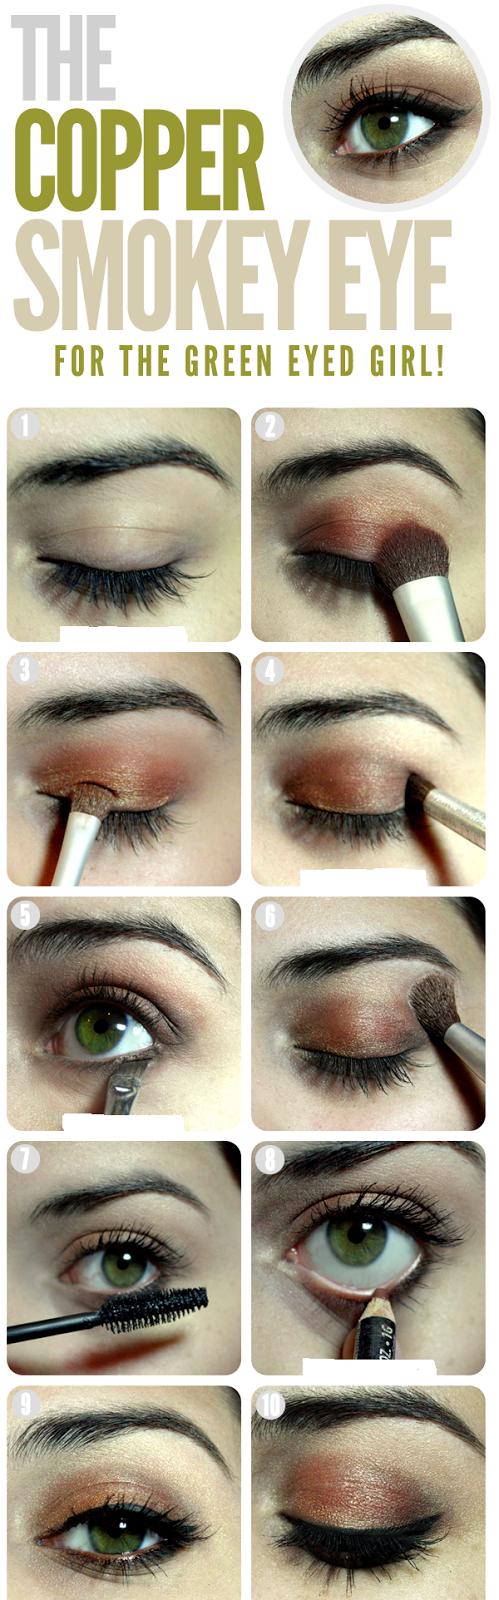 The Copper Smokey Eye for the Green Eyed Girl !